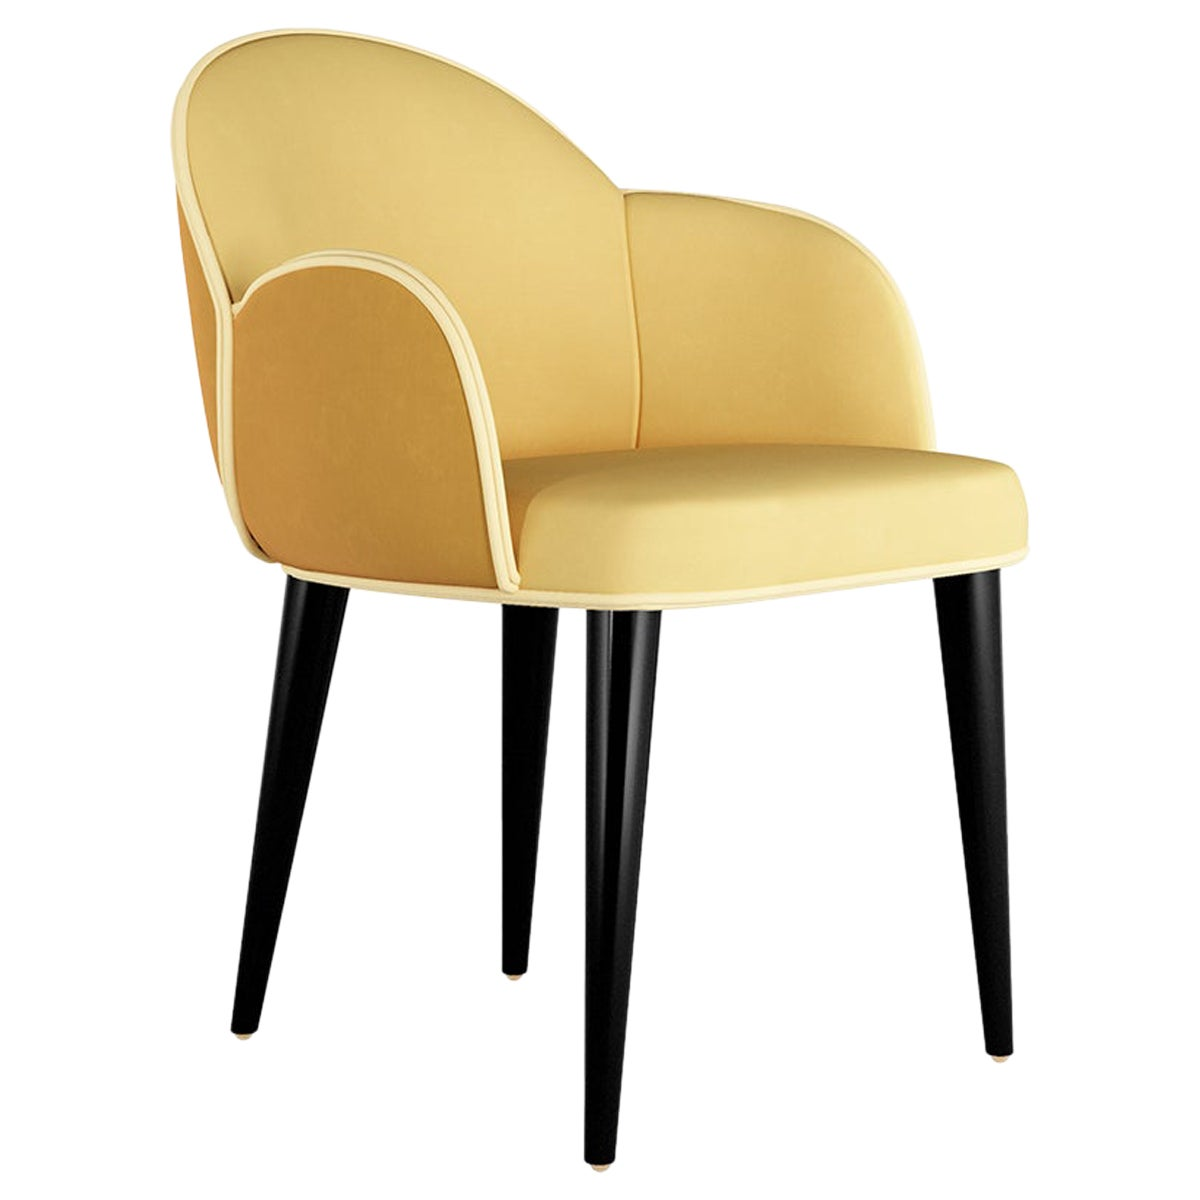 Contemporary Yellow Velvet Dining Chair with Black Legs